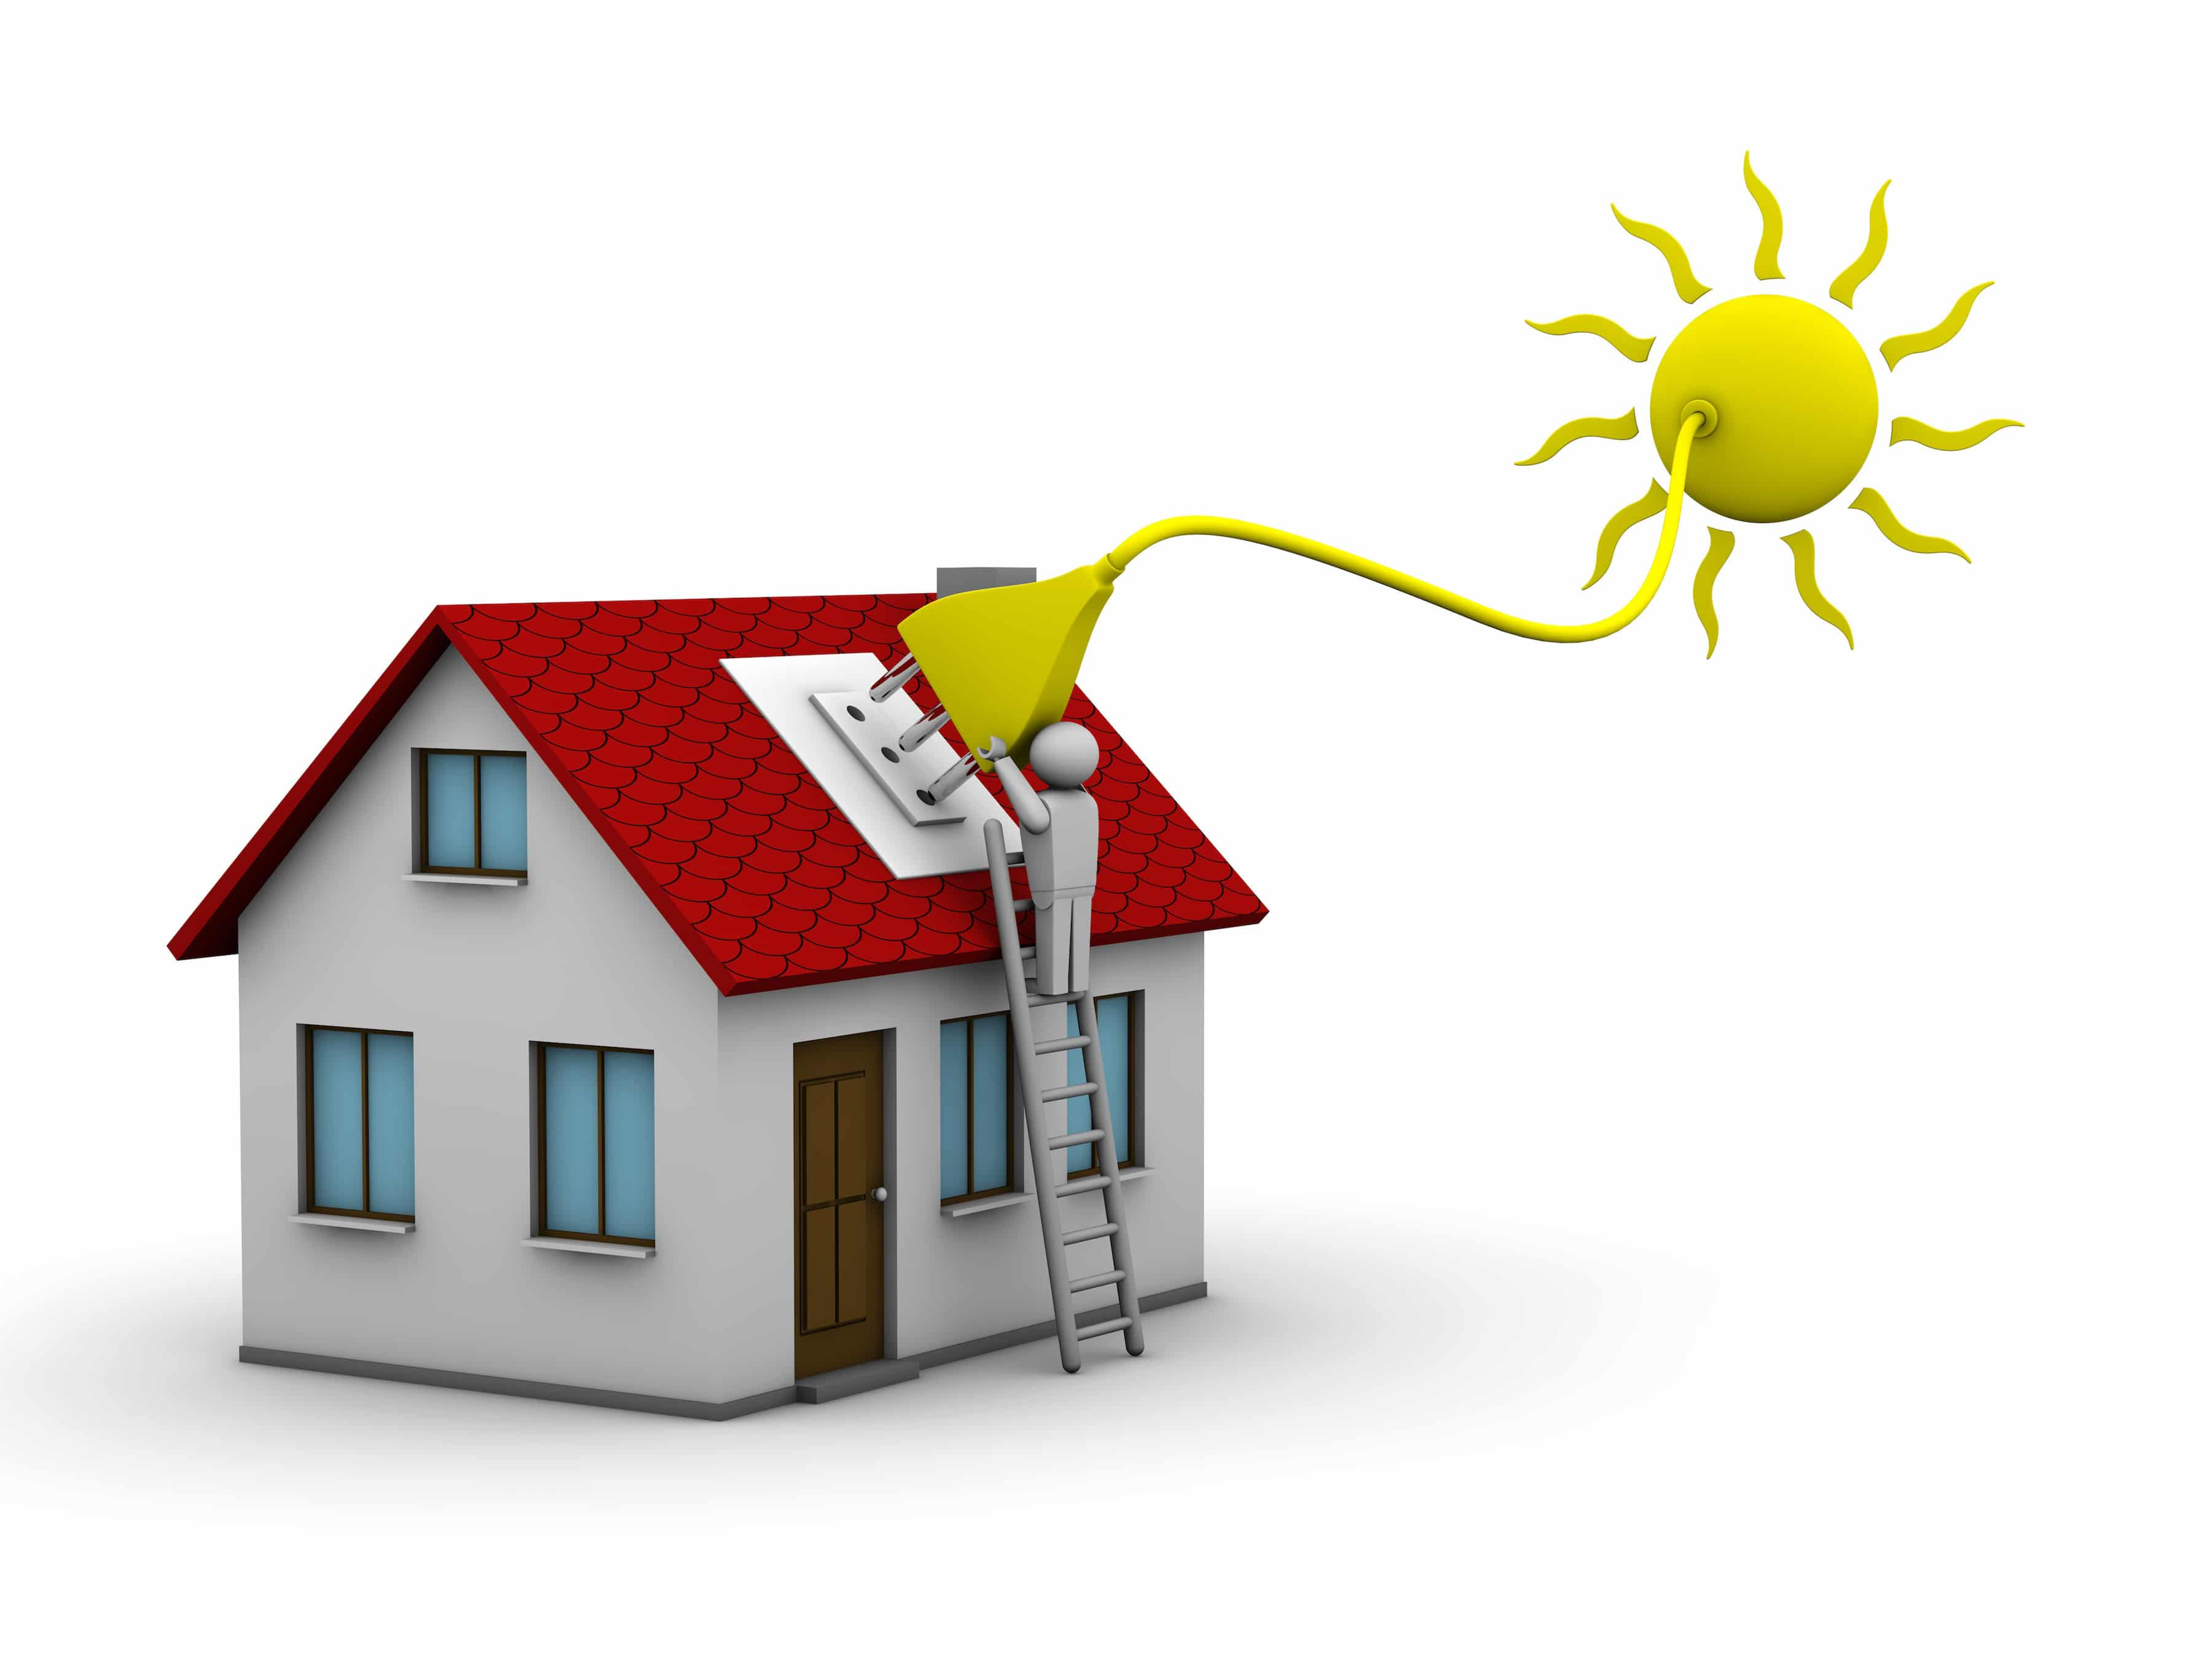 Solar powering your home